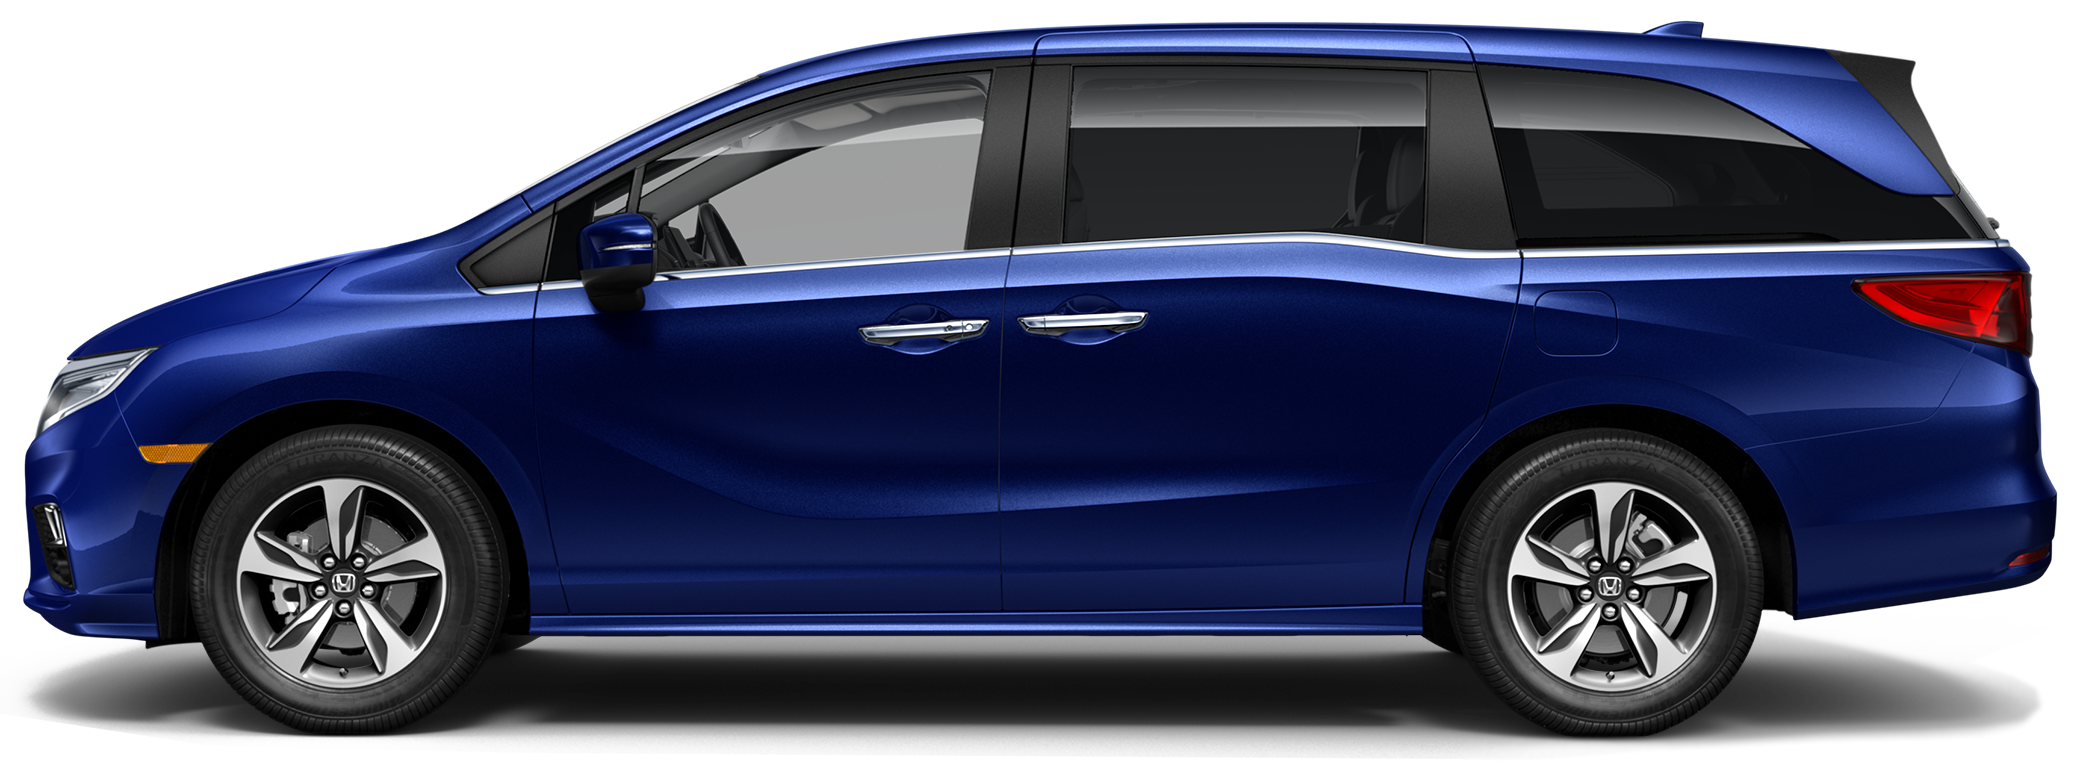 2019 Honda Odyssey Van Digital Showroom Autonation Honda Dulles